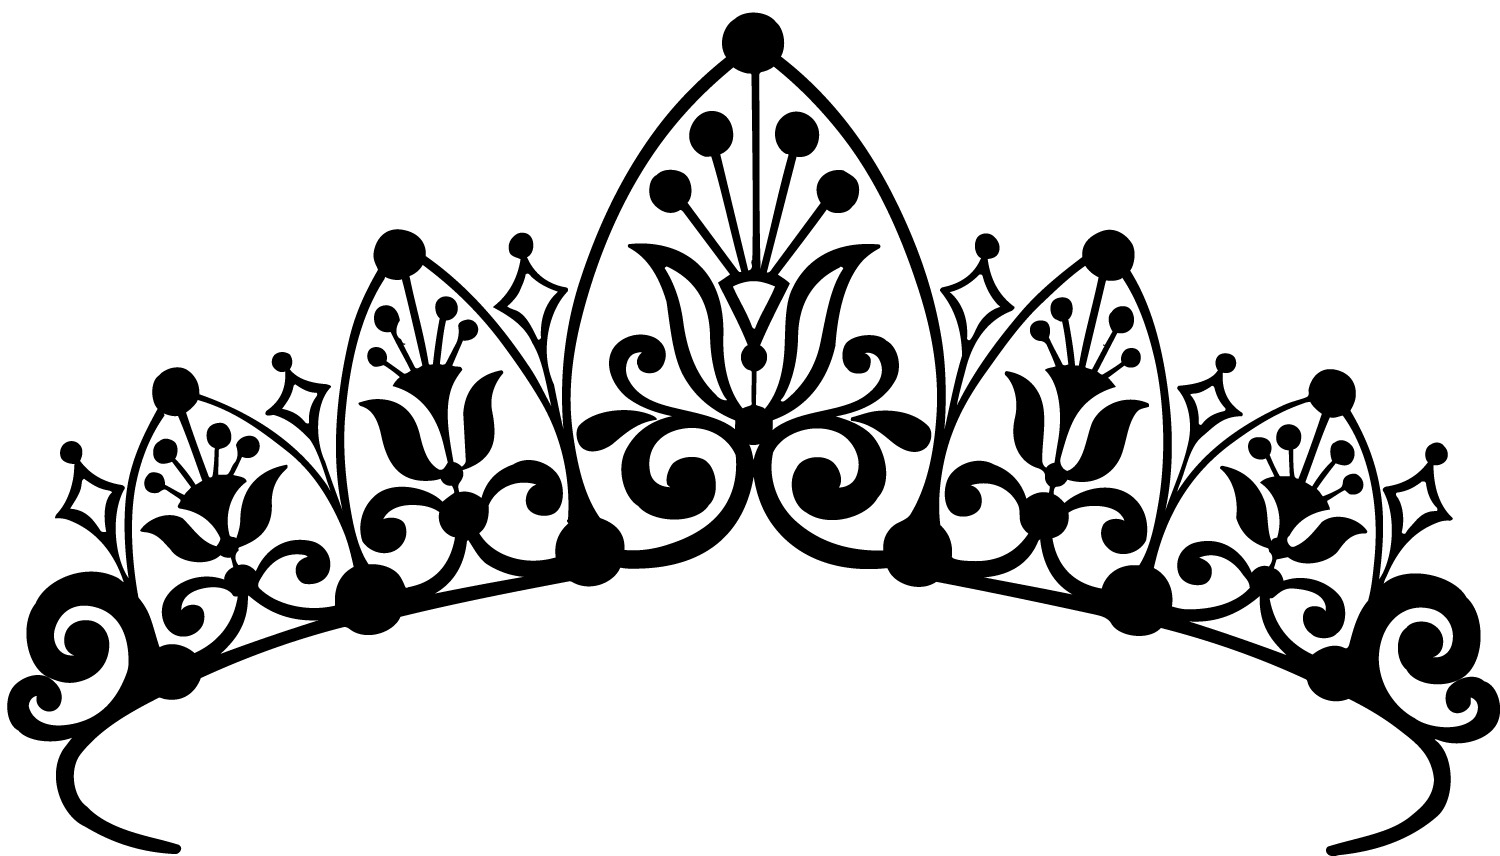 Beauty queen being crowned clipart clip library stock Queen Crown Drawing | Free download best Queen Crown Drawing on ... clip library stock